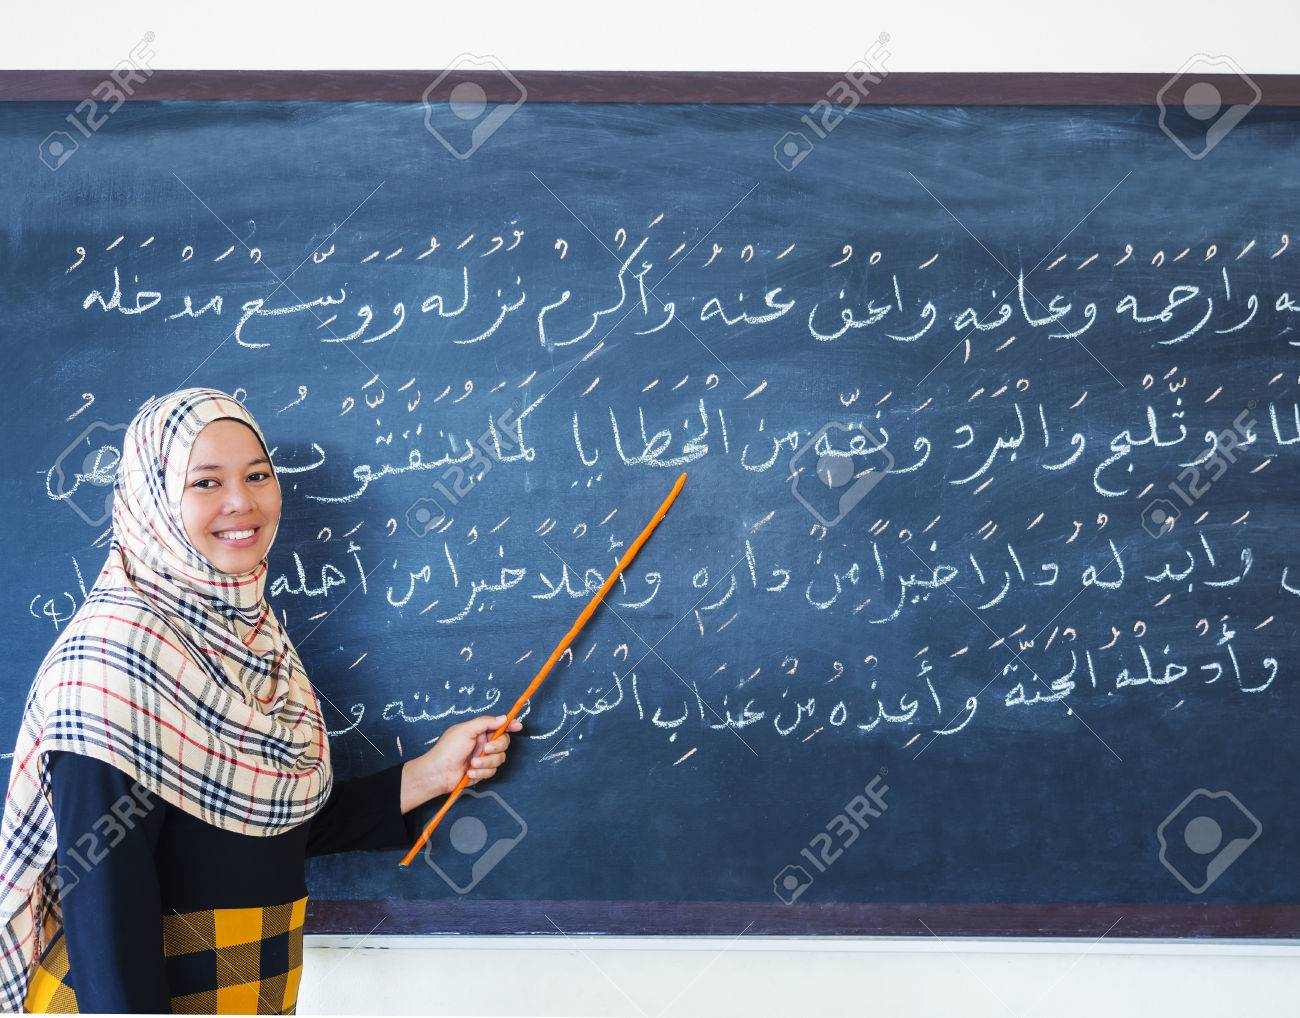 muslim woman teaching islamic the prayers in arabic on chalkboard